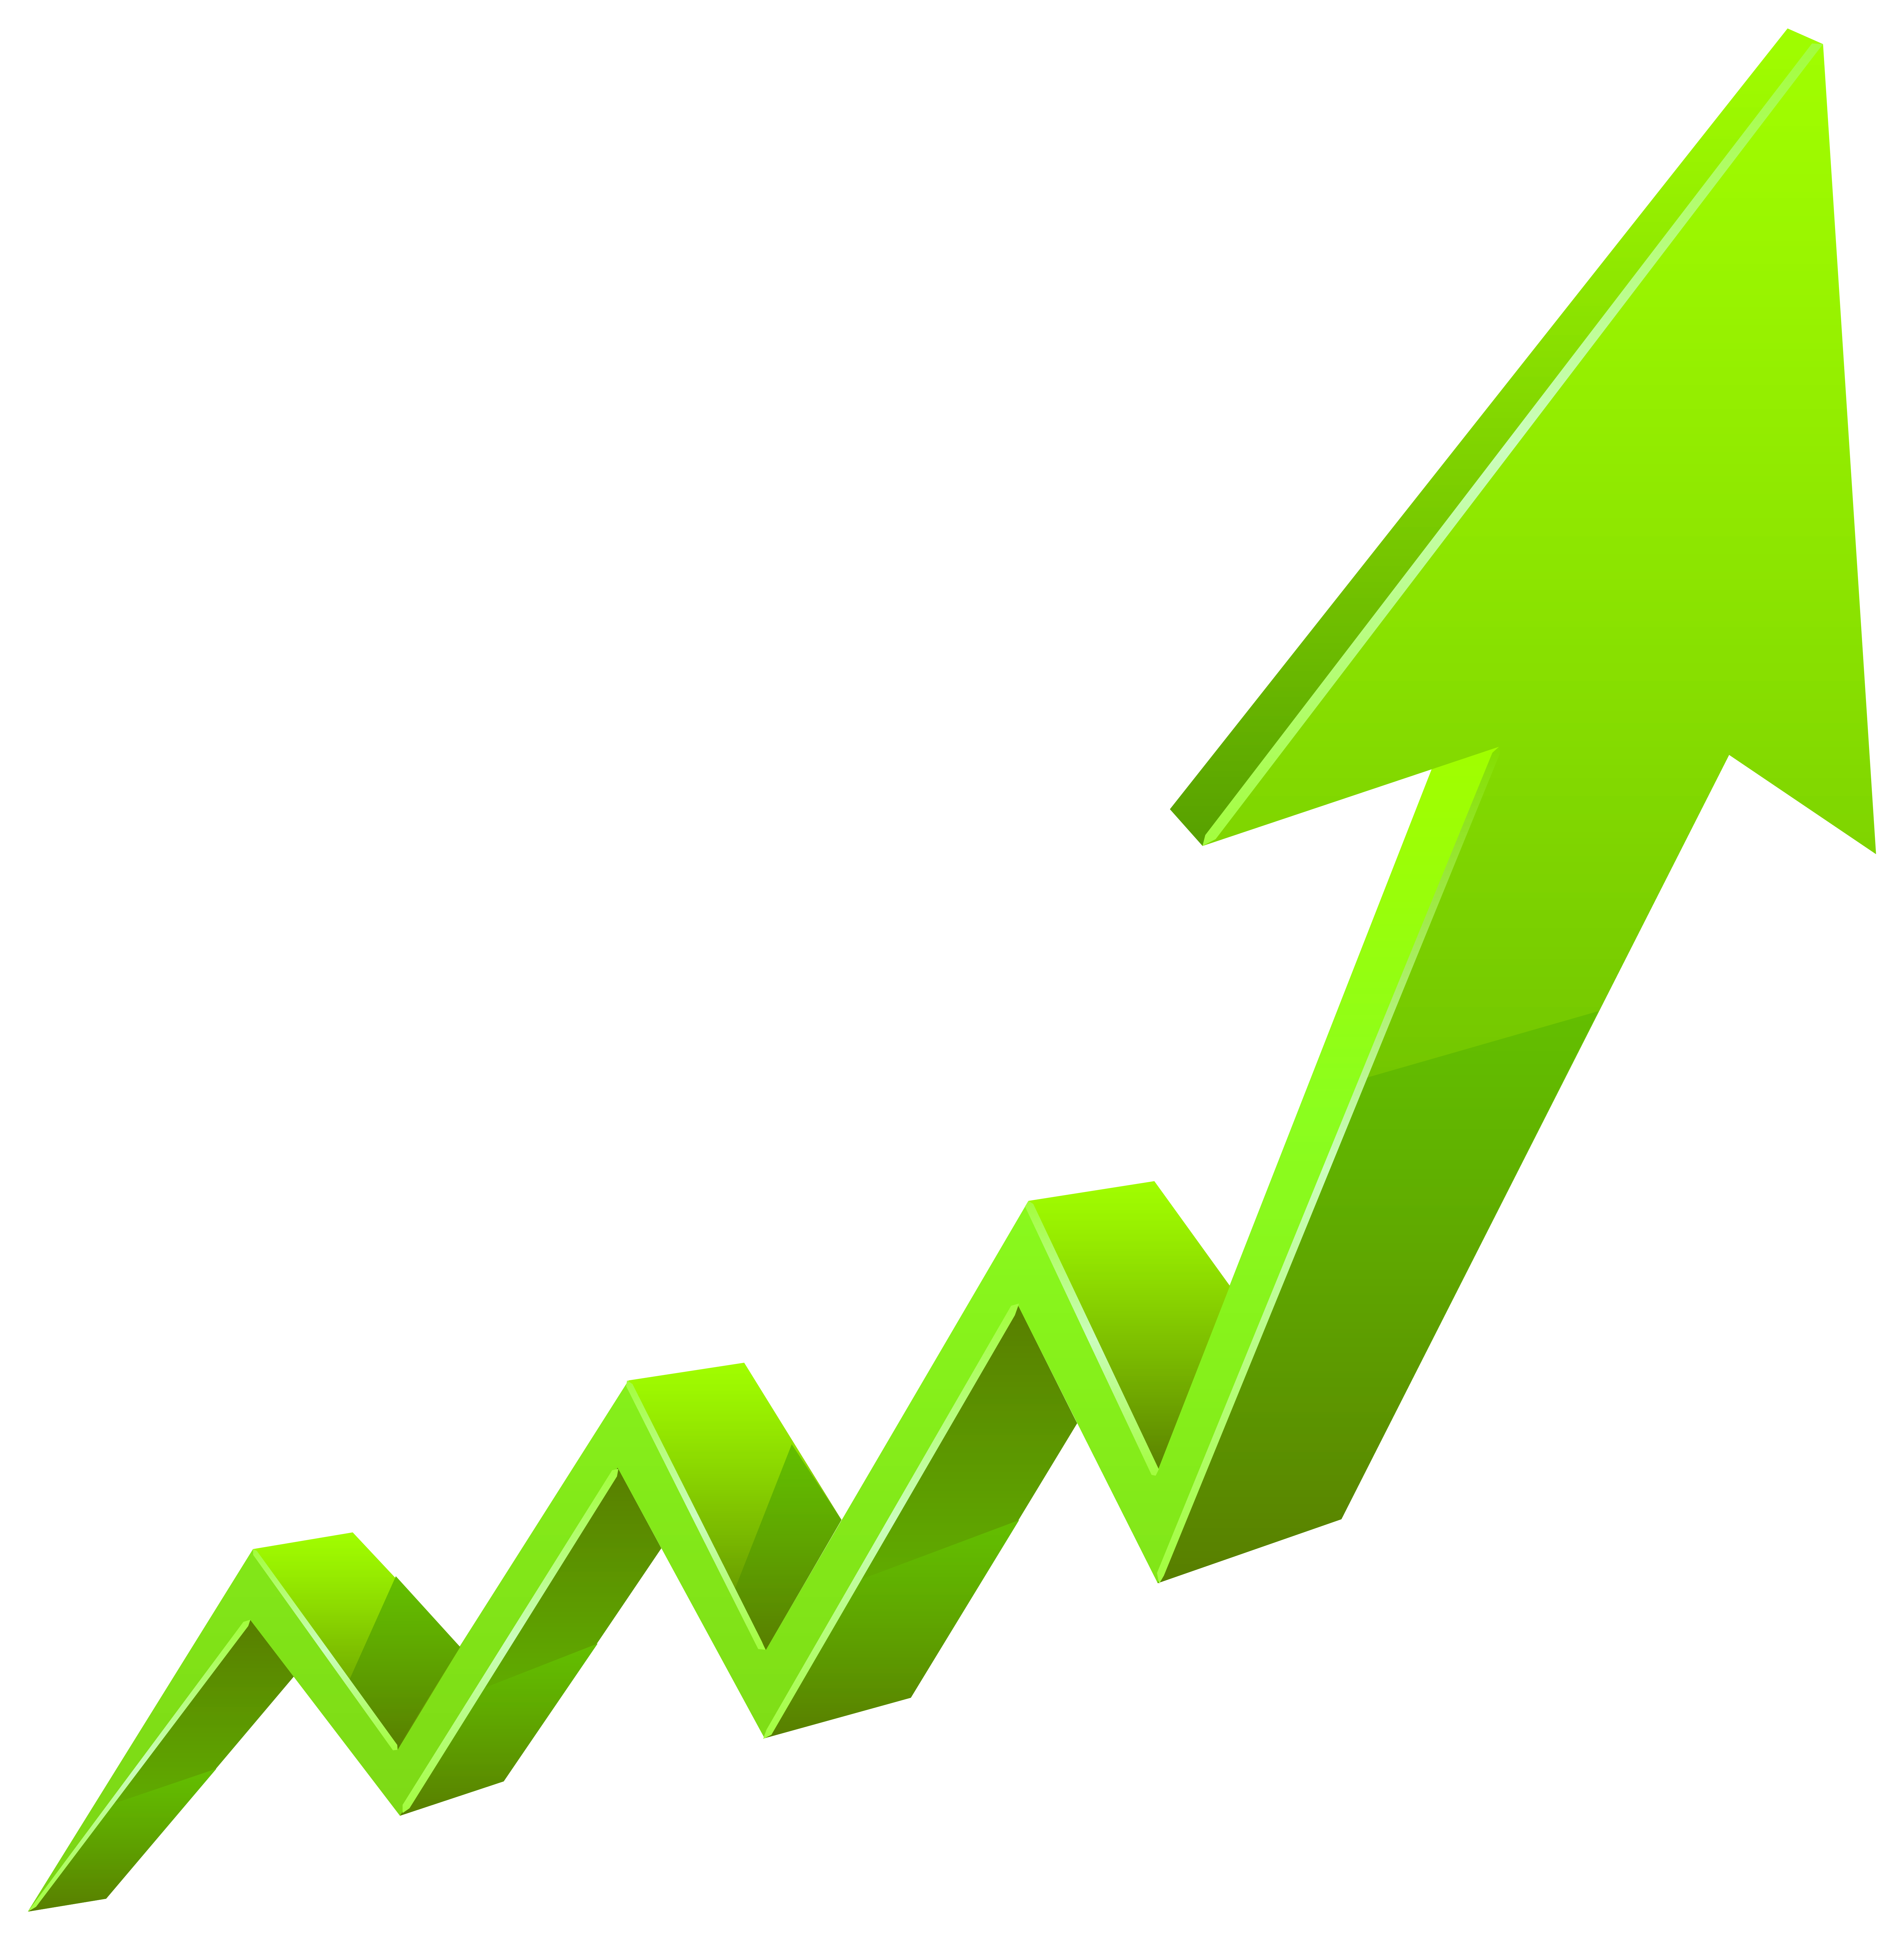 Clipart arrows graph. Https gallery yopriceville com